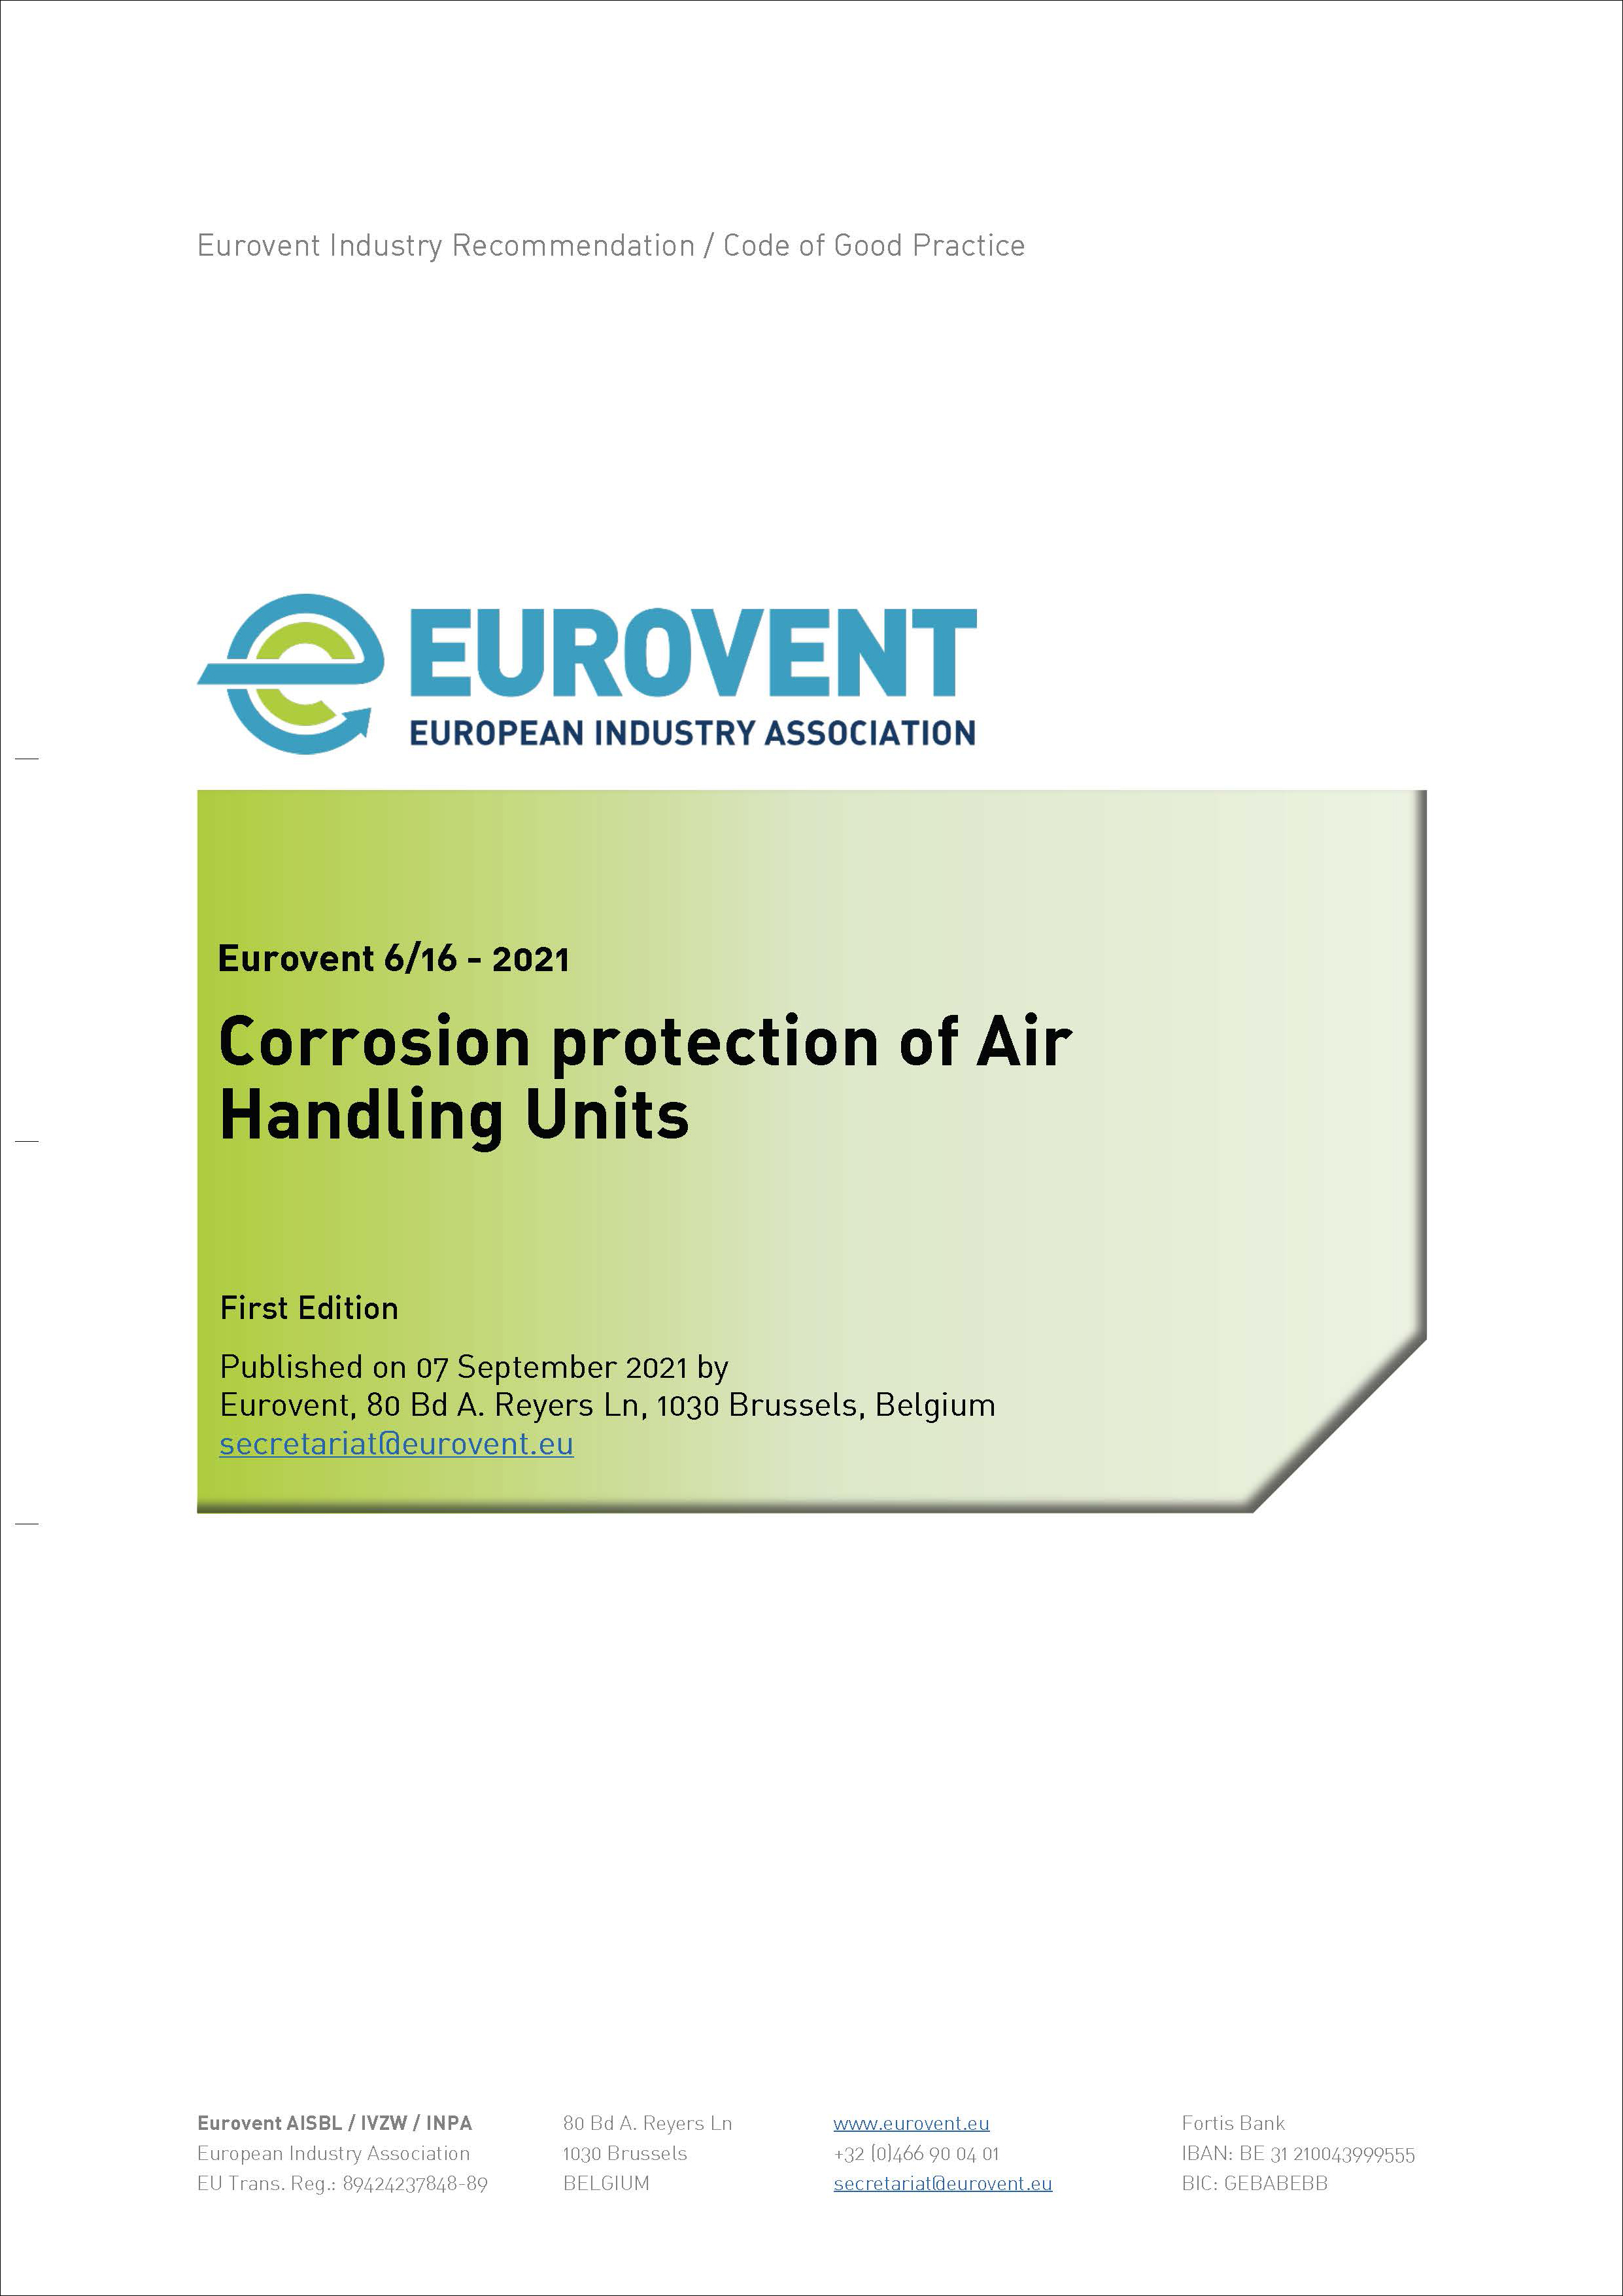 Eurovent 6/16 - 2021: Corrosion Protection of Air Handling Units - First Edition